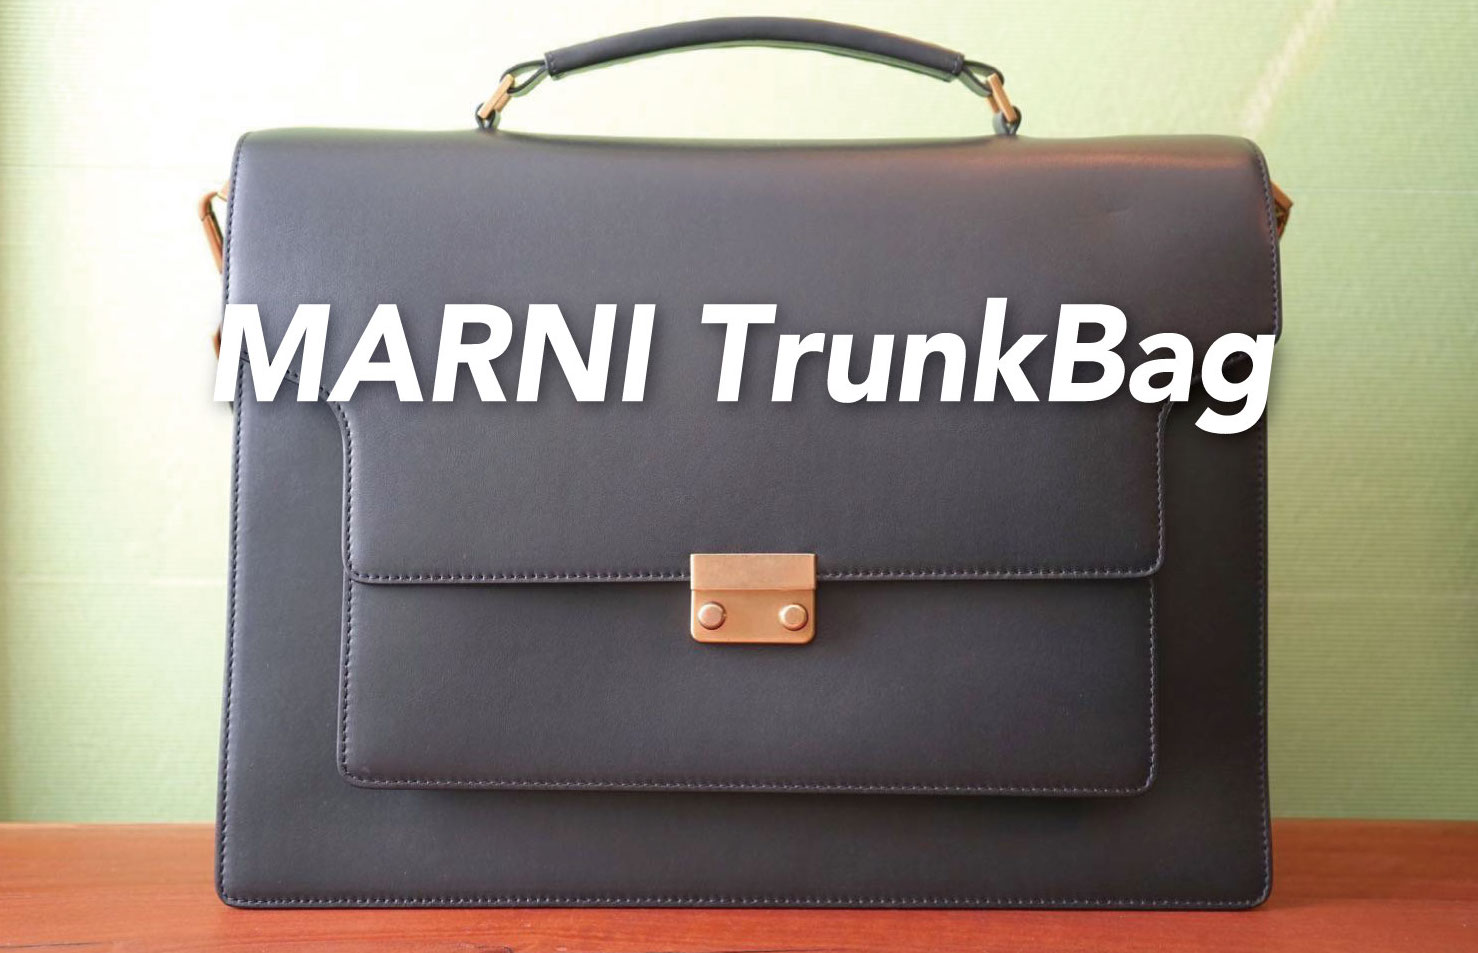 marni-trunkbag_th